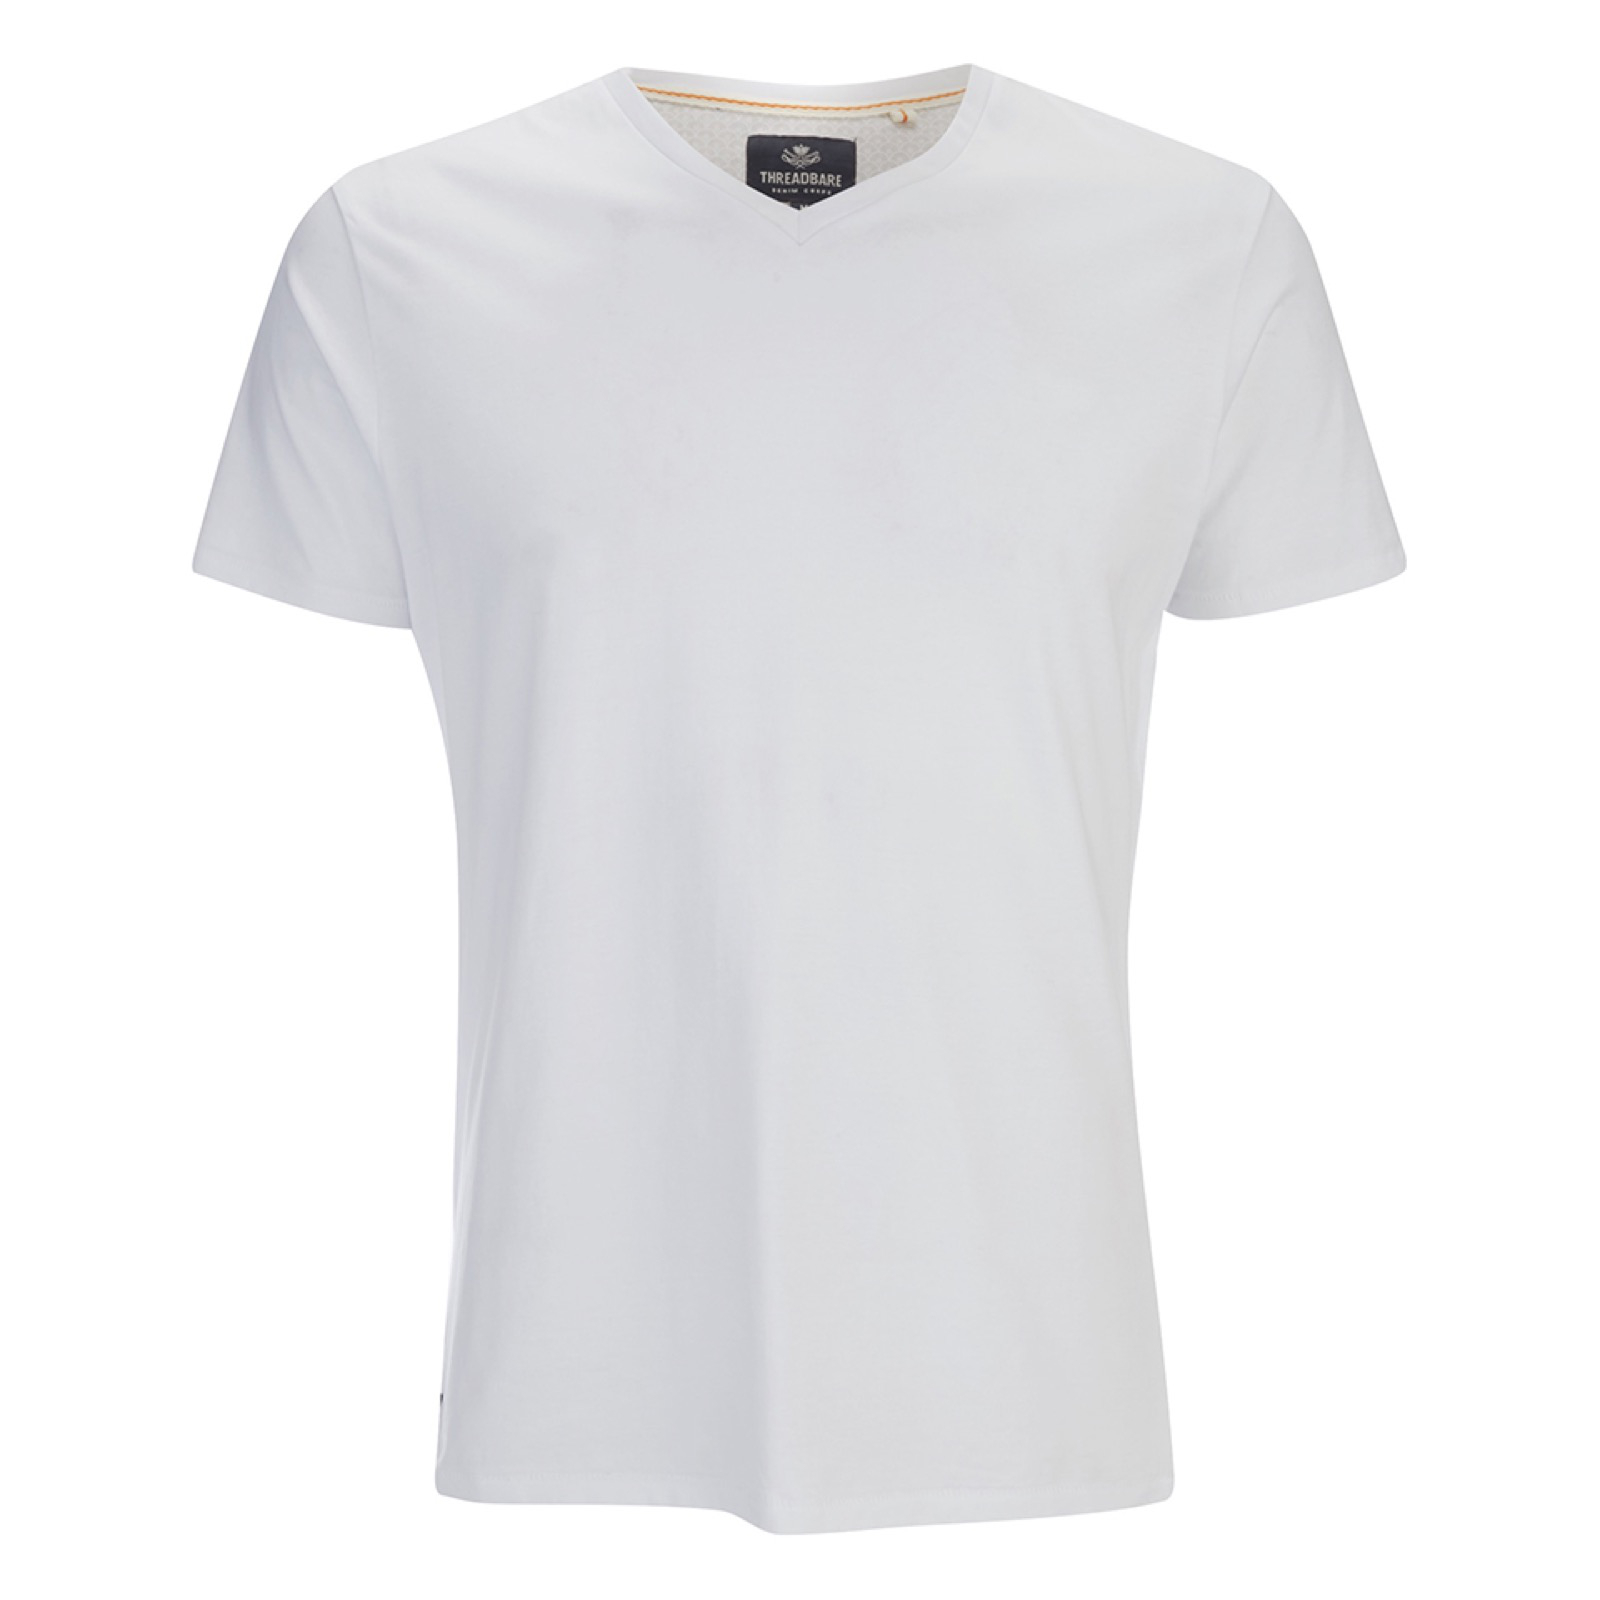 c66d841f80b5 Threadbare Men's Charlie Plain V-Neck T-Shirt - White Clothing | Zavvi